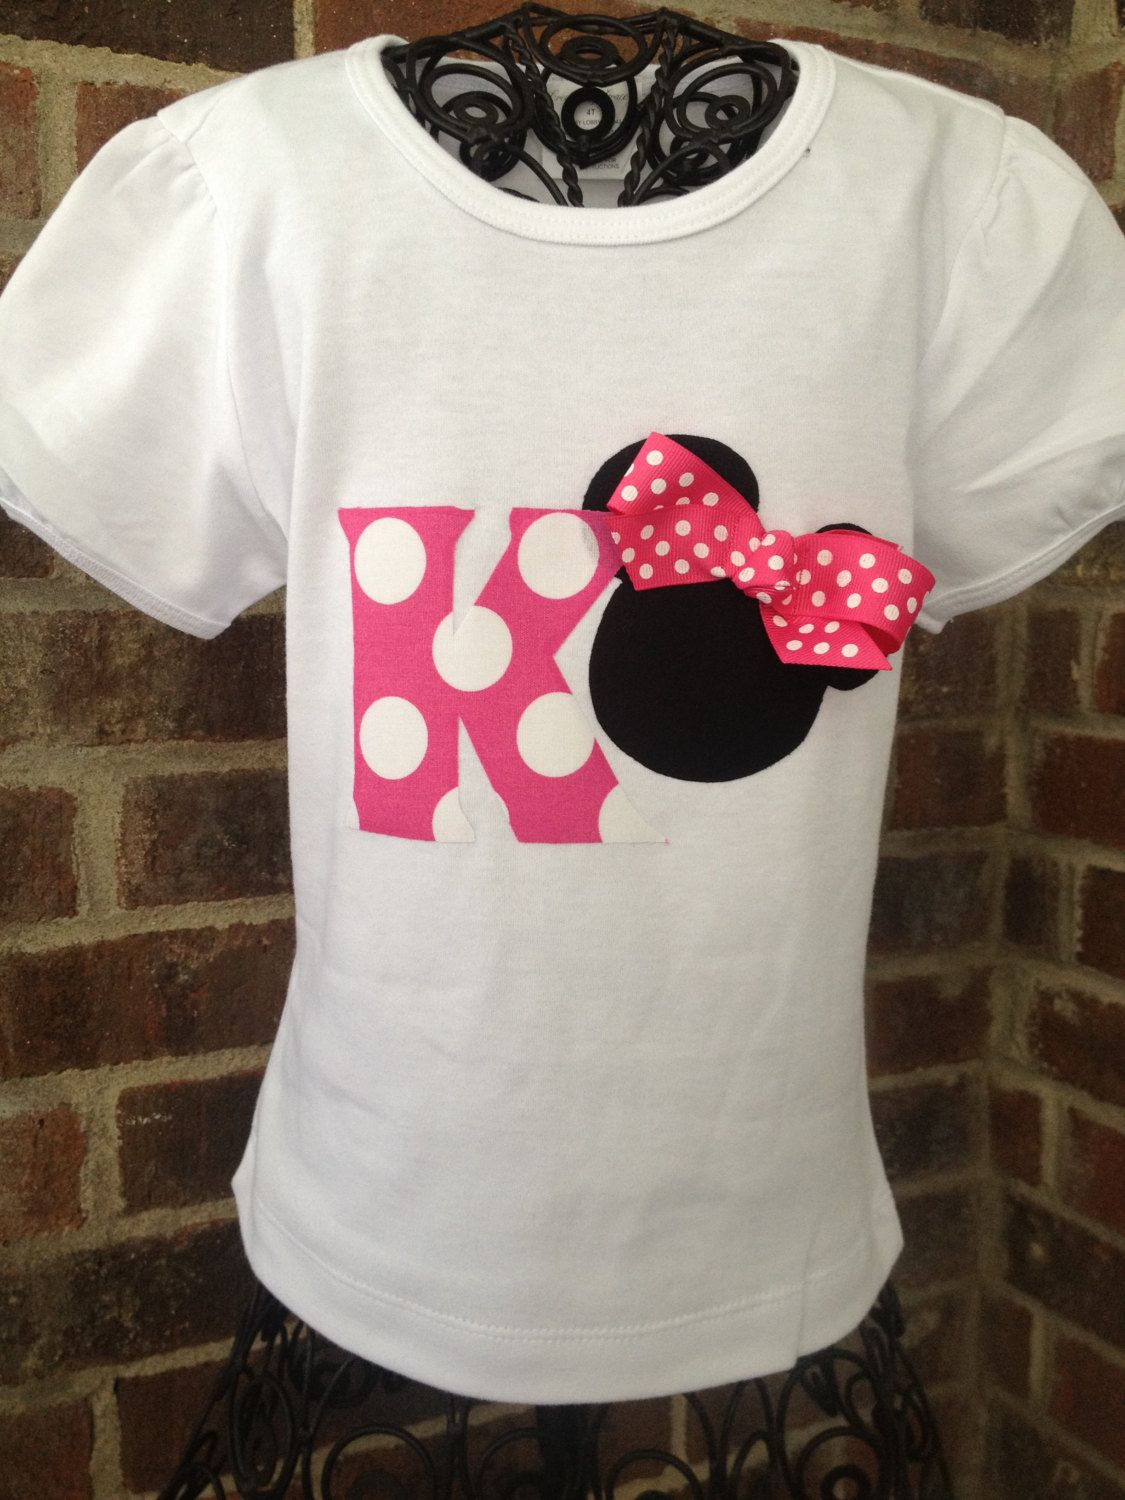 96dca416 Minnie Mouse Inspired Shirt Disney Vacation Shirts, Disney Shirts, Disney  Vacations, Minnie Mouse